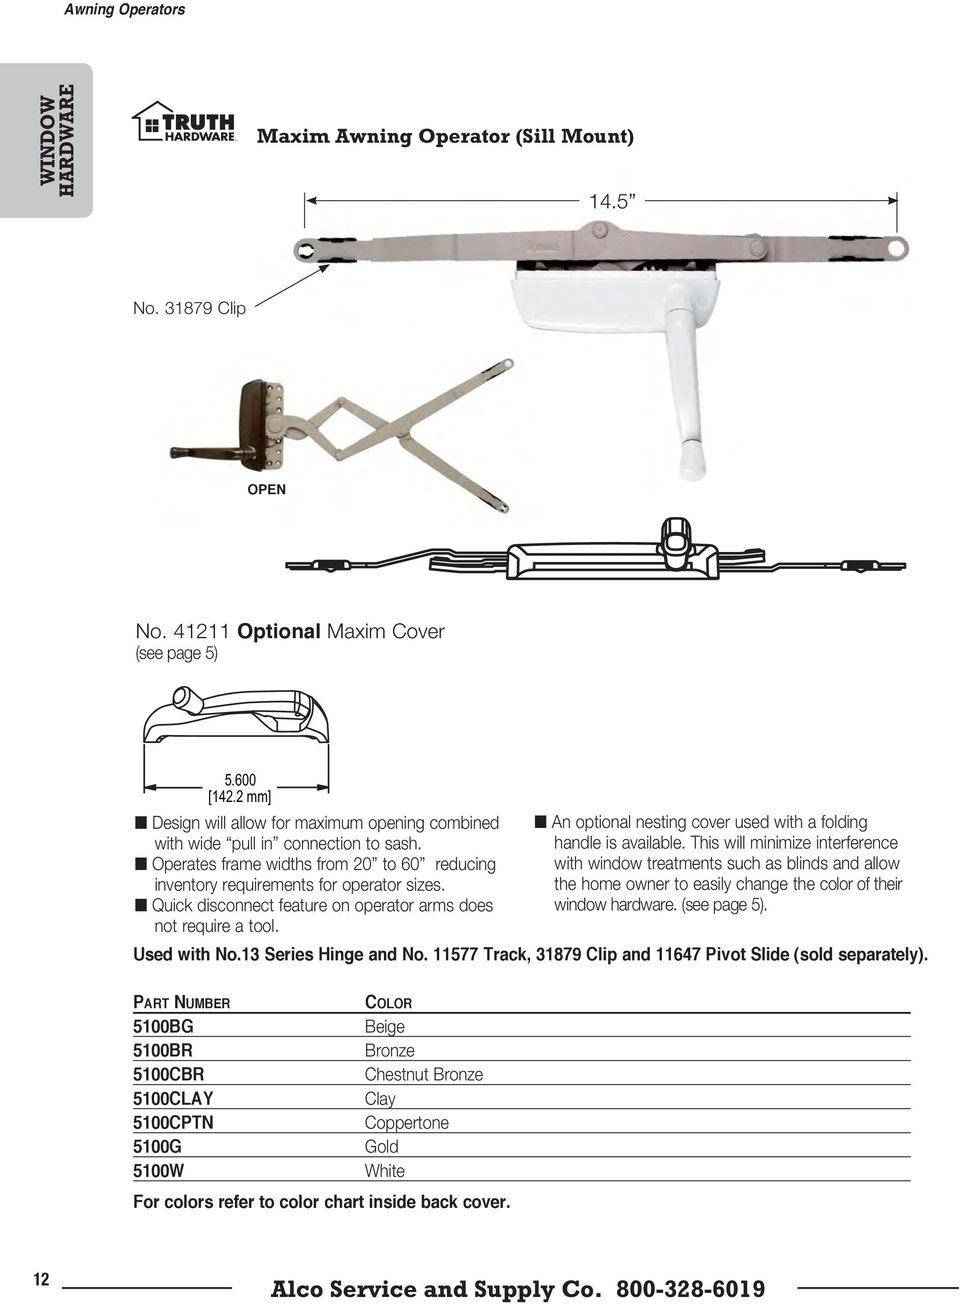 Customer service toll free local 952 fax 952 pdf n quick disconnect feature on operator arms does not require a tool n an optional geenschuldenfo Images